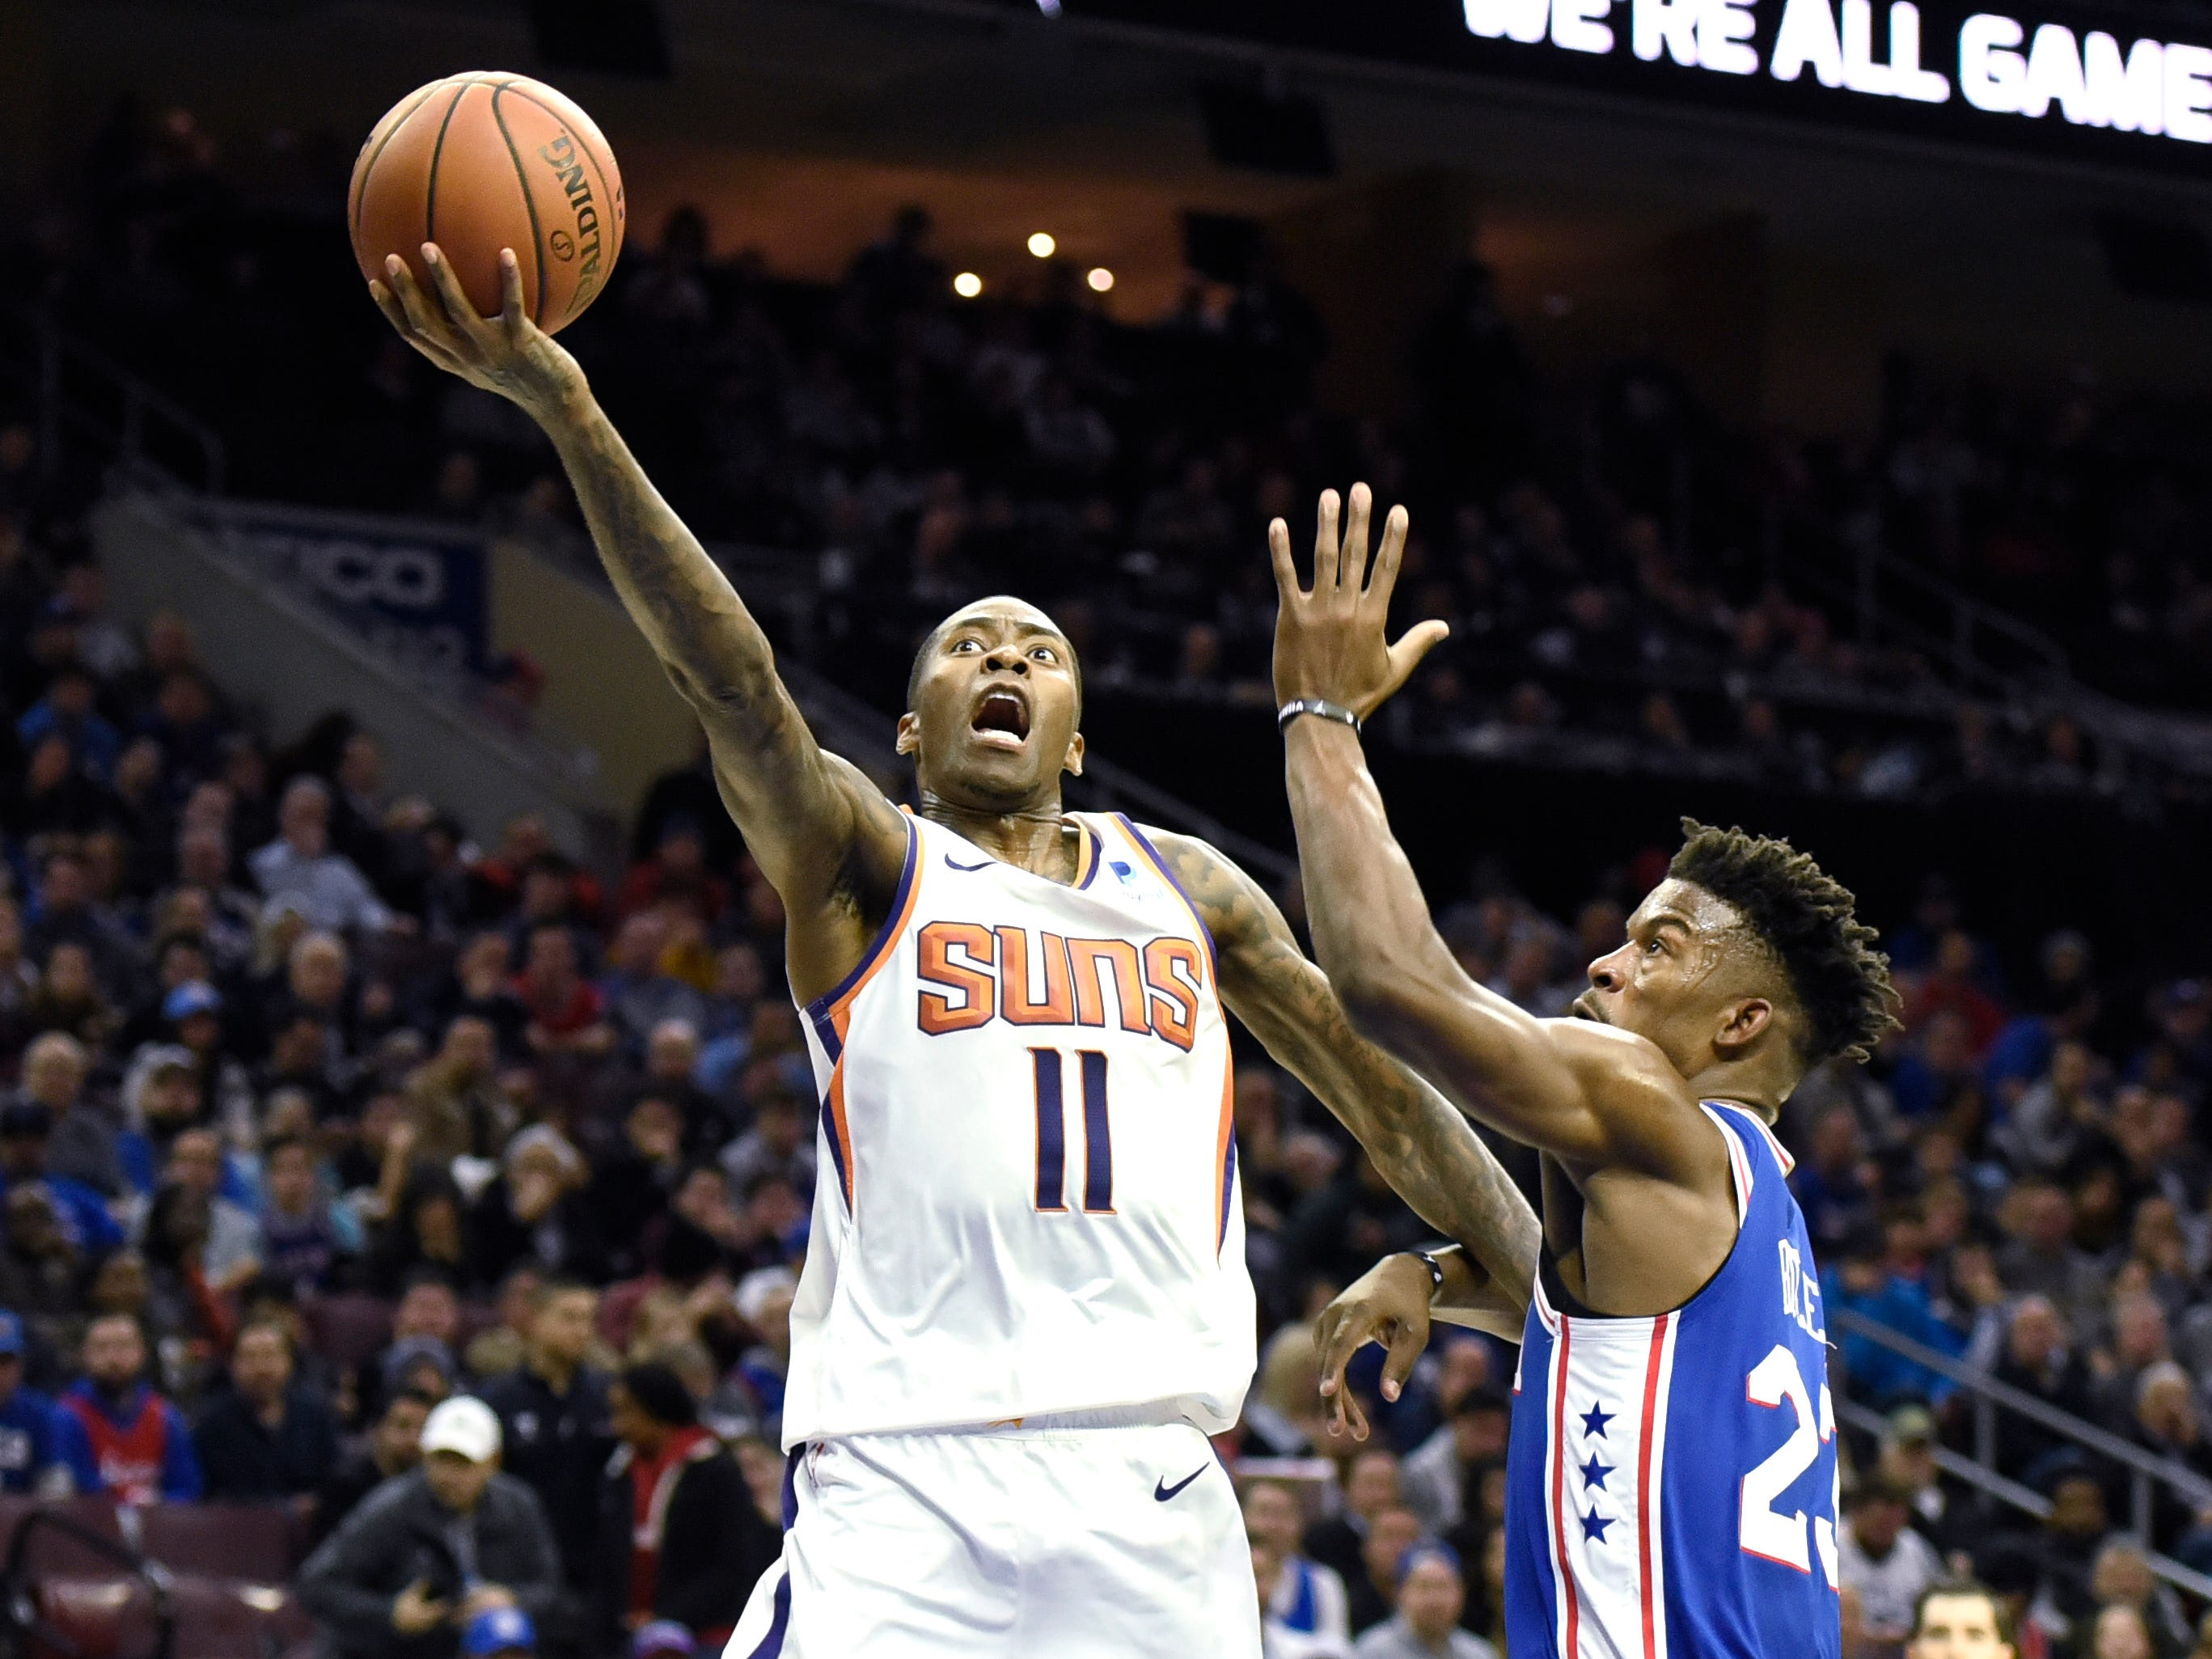 Phoenix Suns' Jamal Crawford (11) drives to the basket past Philadelphia 76ers' Jimmy Butler (23) in the first half of an NBA basketball game, Monday, Nov. 19, 2018, in Philadelphia. (AP Photo/Michael Perez)